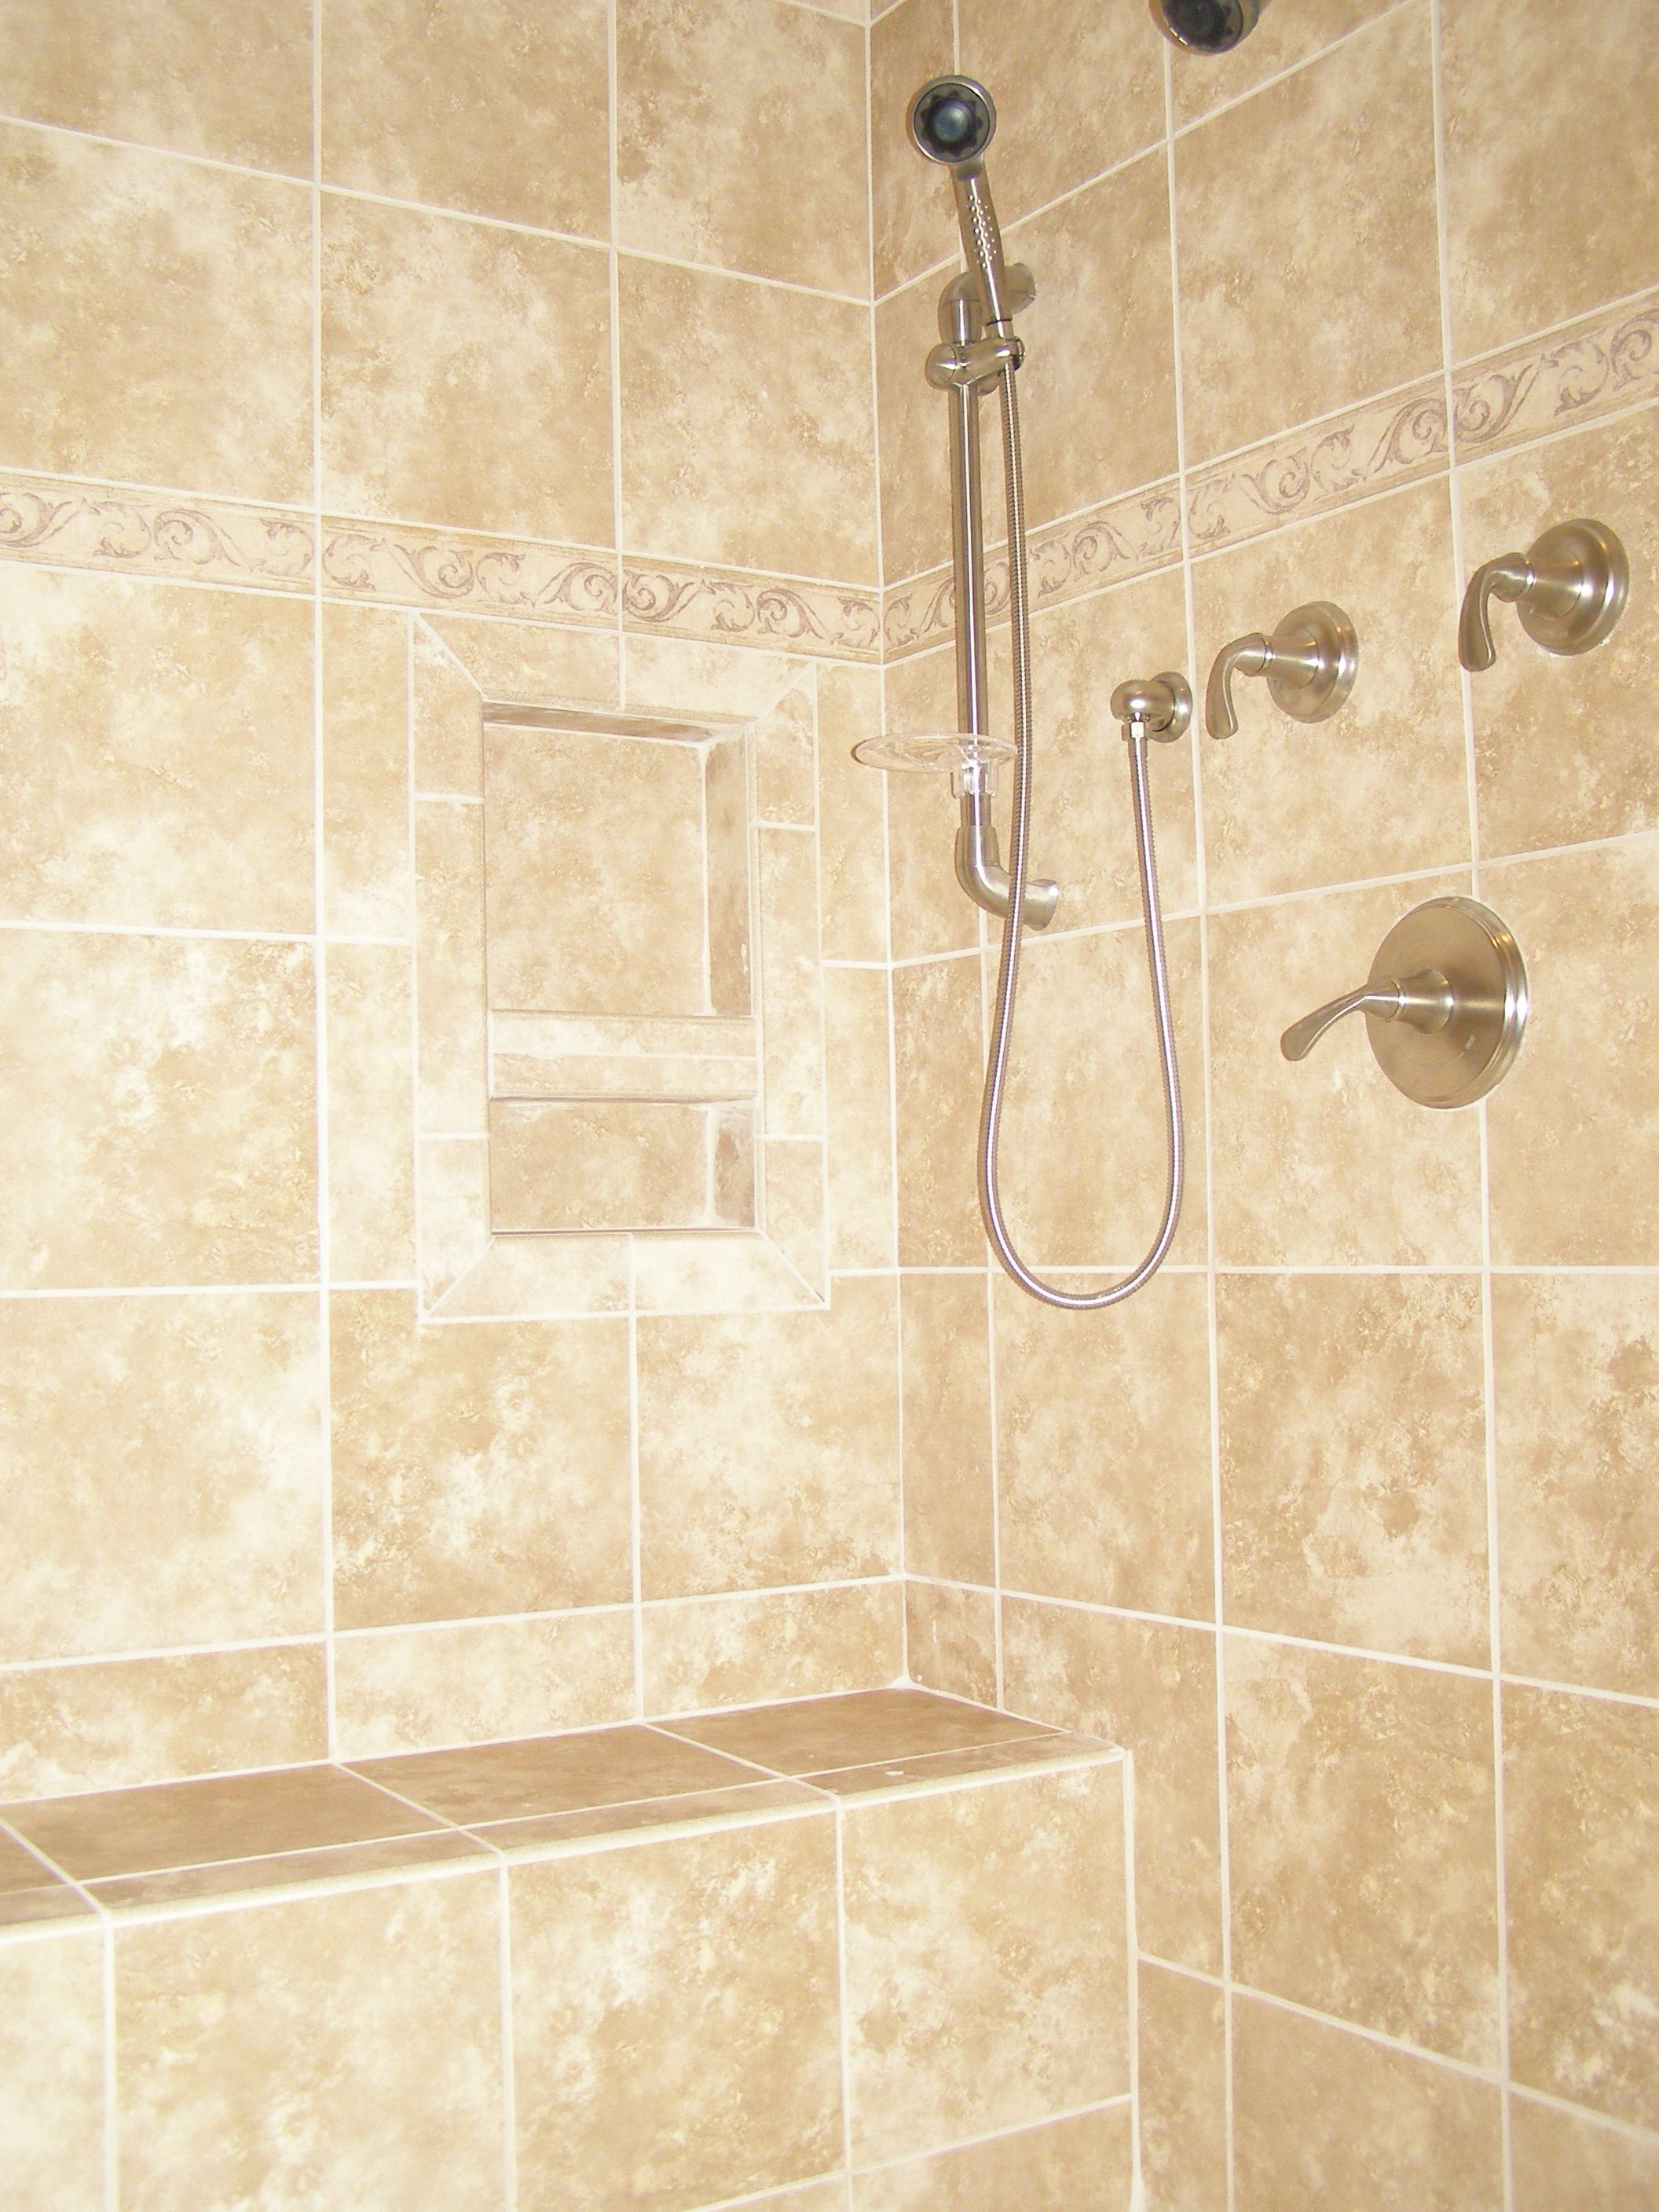 Ceramic Tile Showers Without Doors | Ceramic Tile Shower Bench Seat